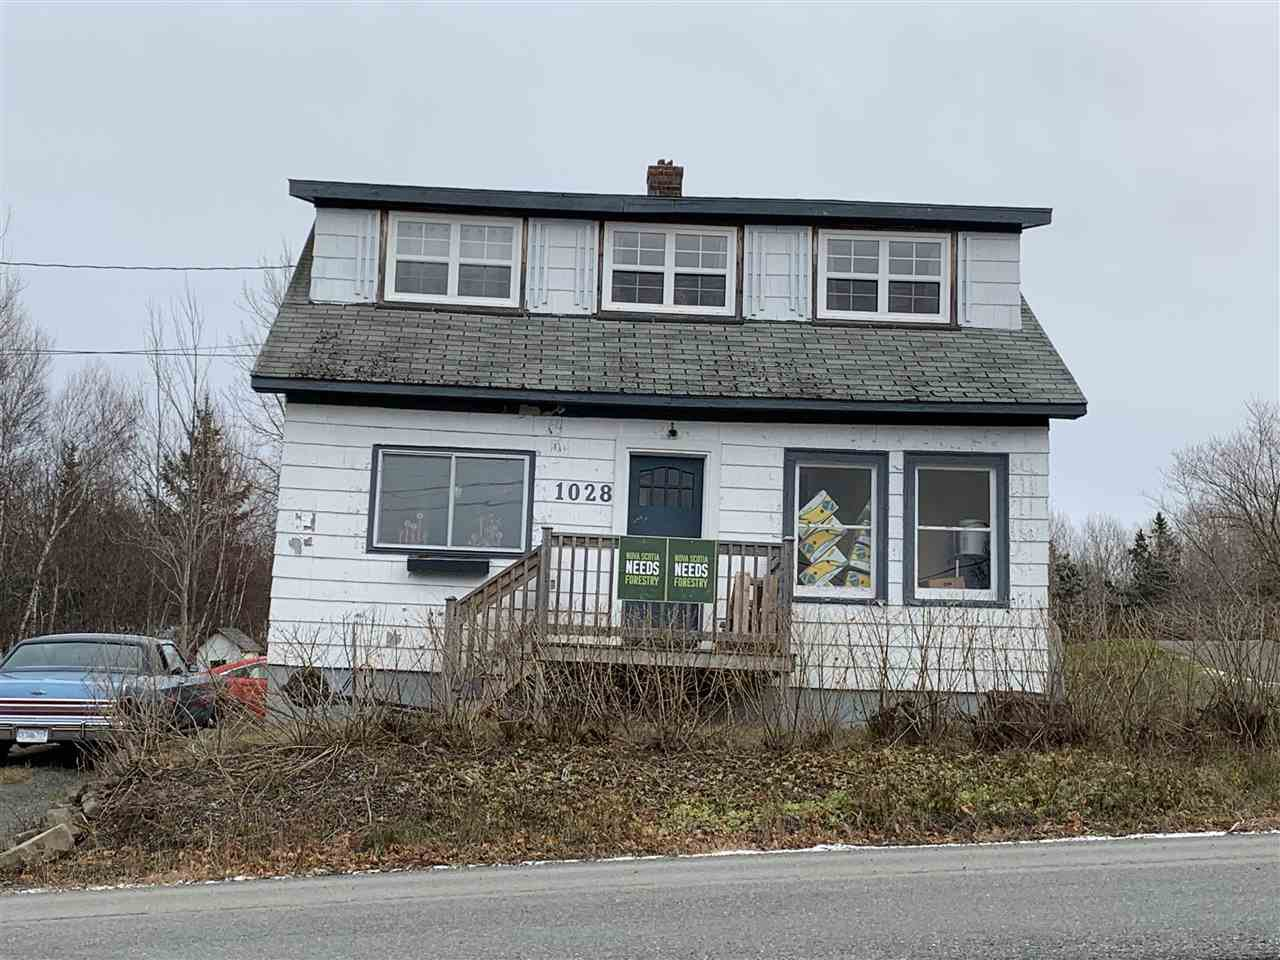 Main Photo: 1028 Birch Street in Frasers Mountain: 108-Rural Pictou County Residential for sale (Northern Region)  : MLS®# 202024359